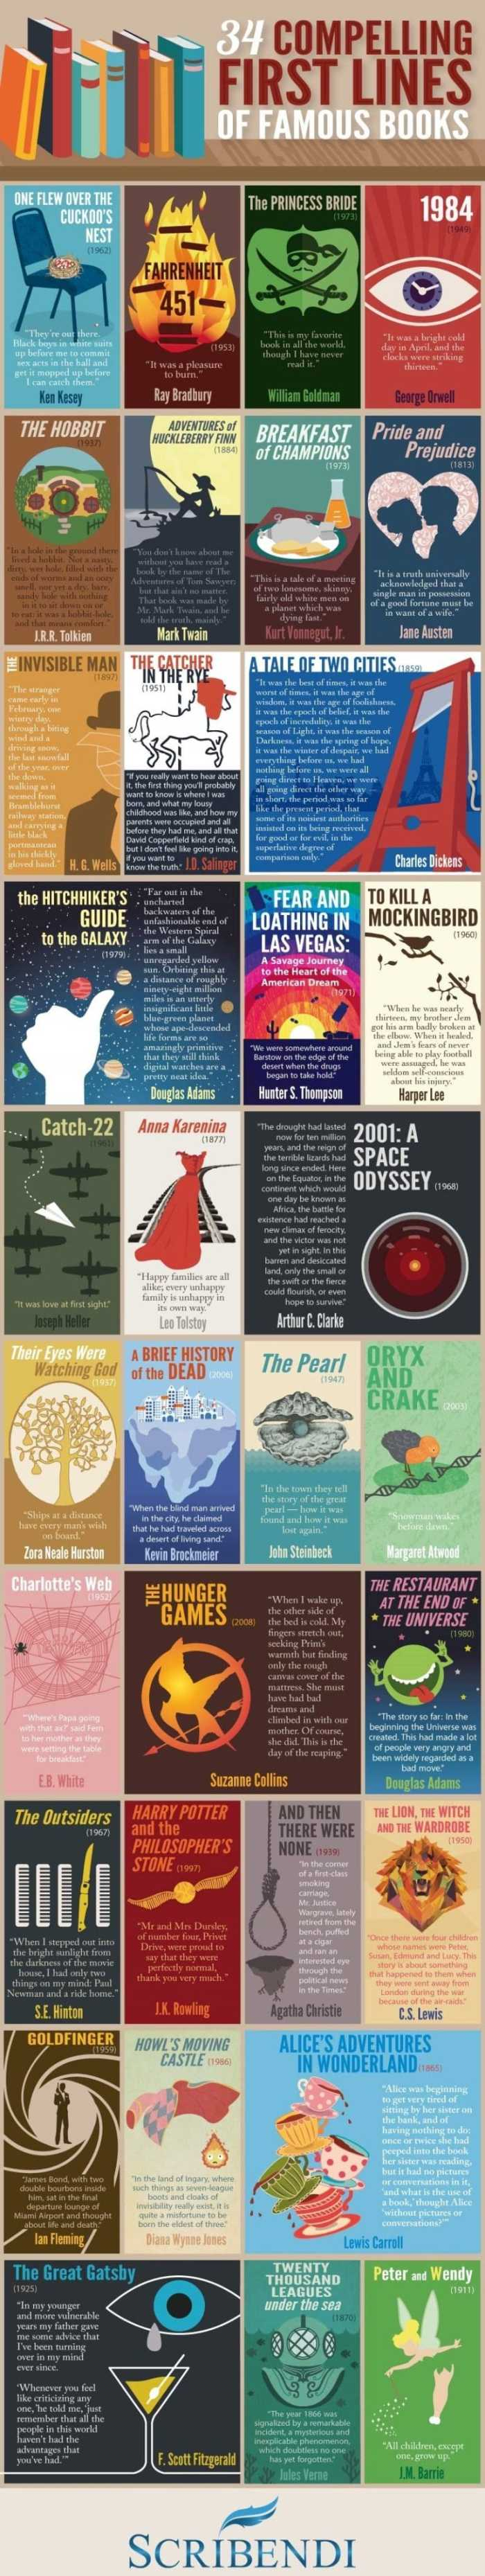 First-lines-of-famous-novels-full-infographic